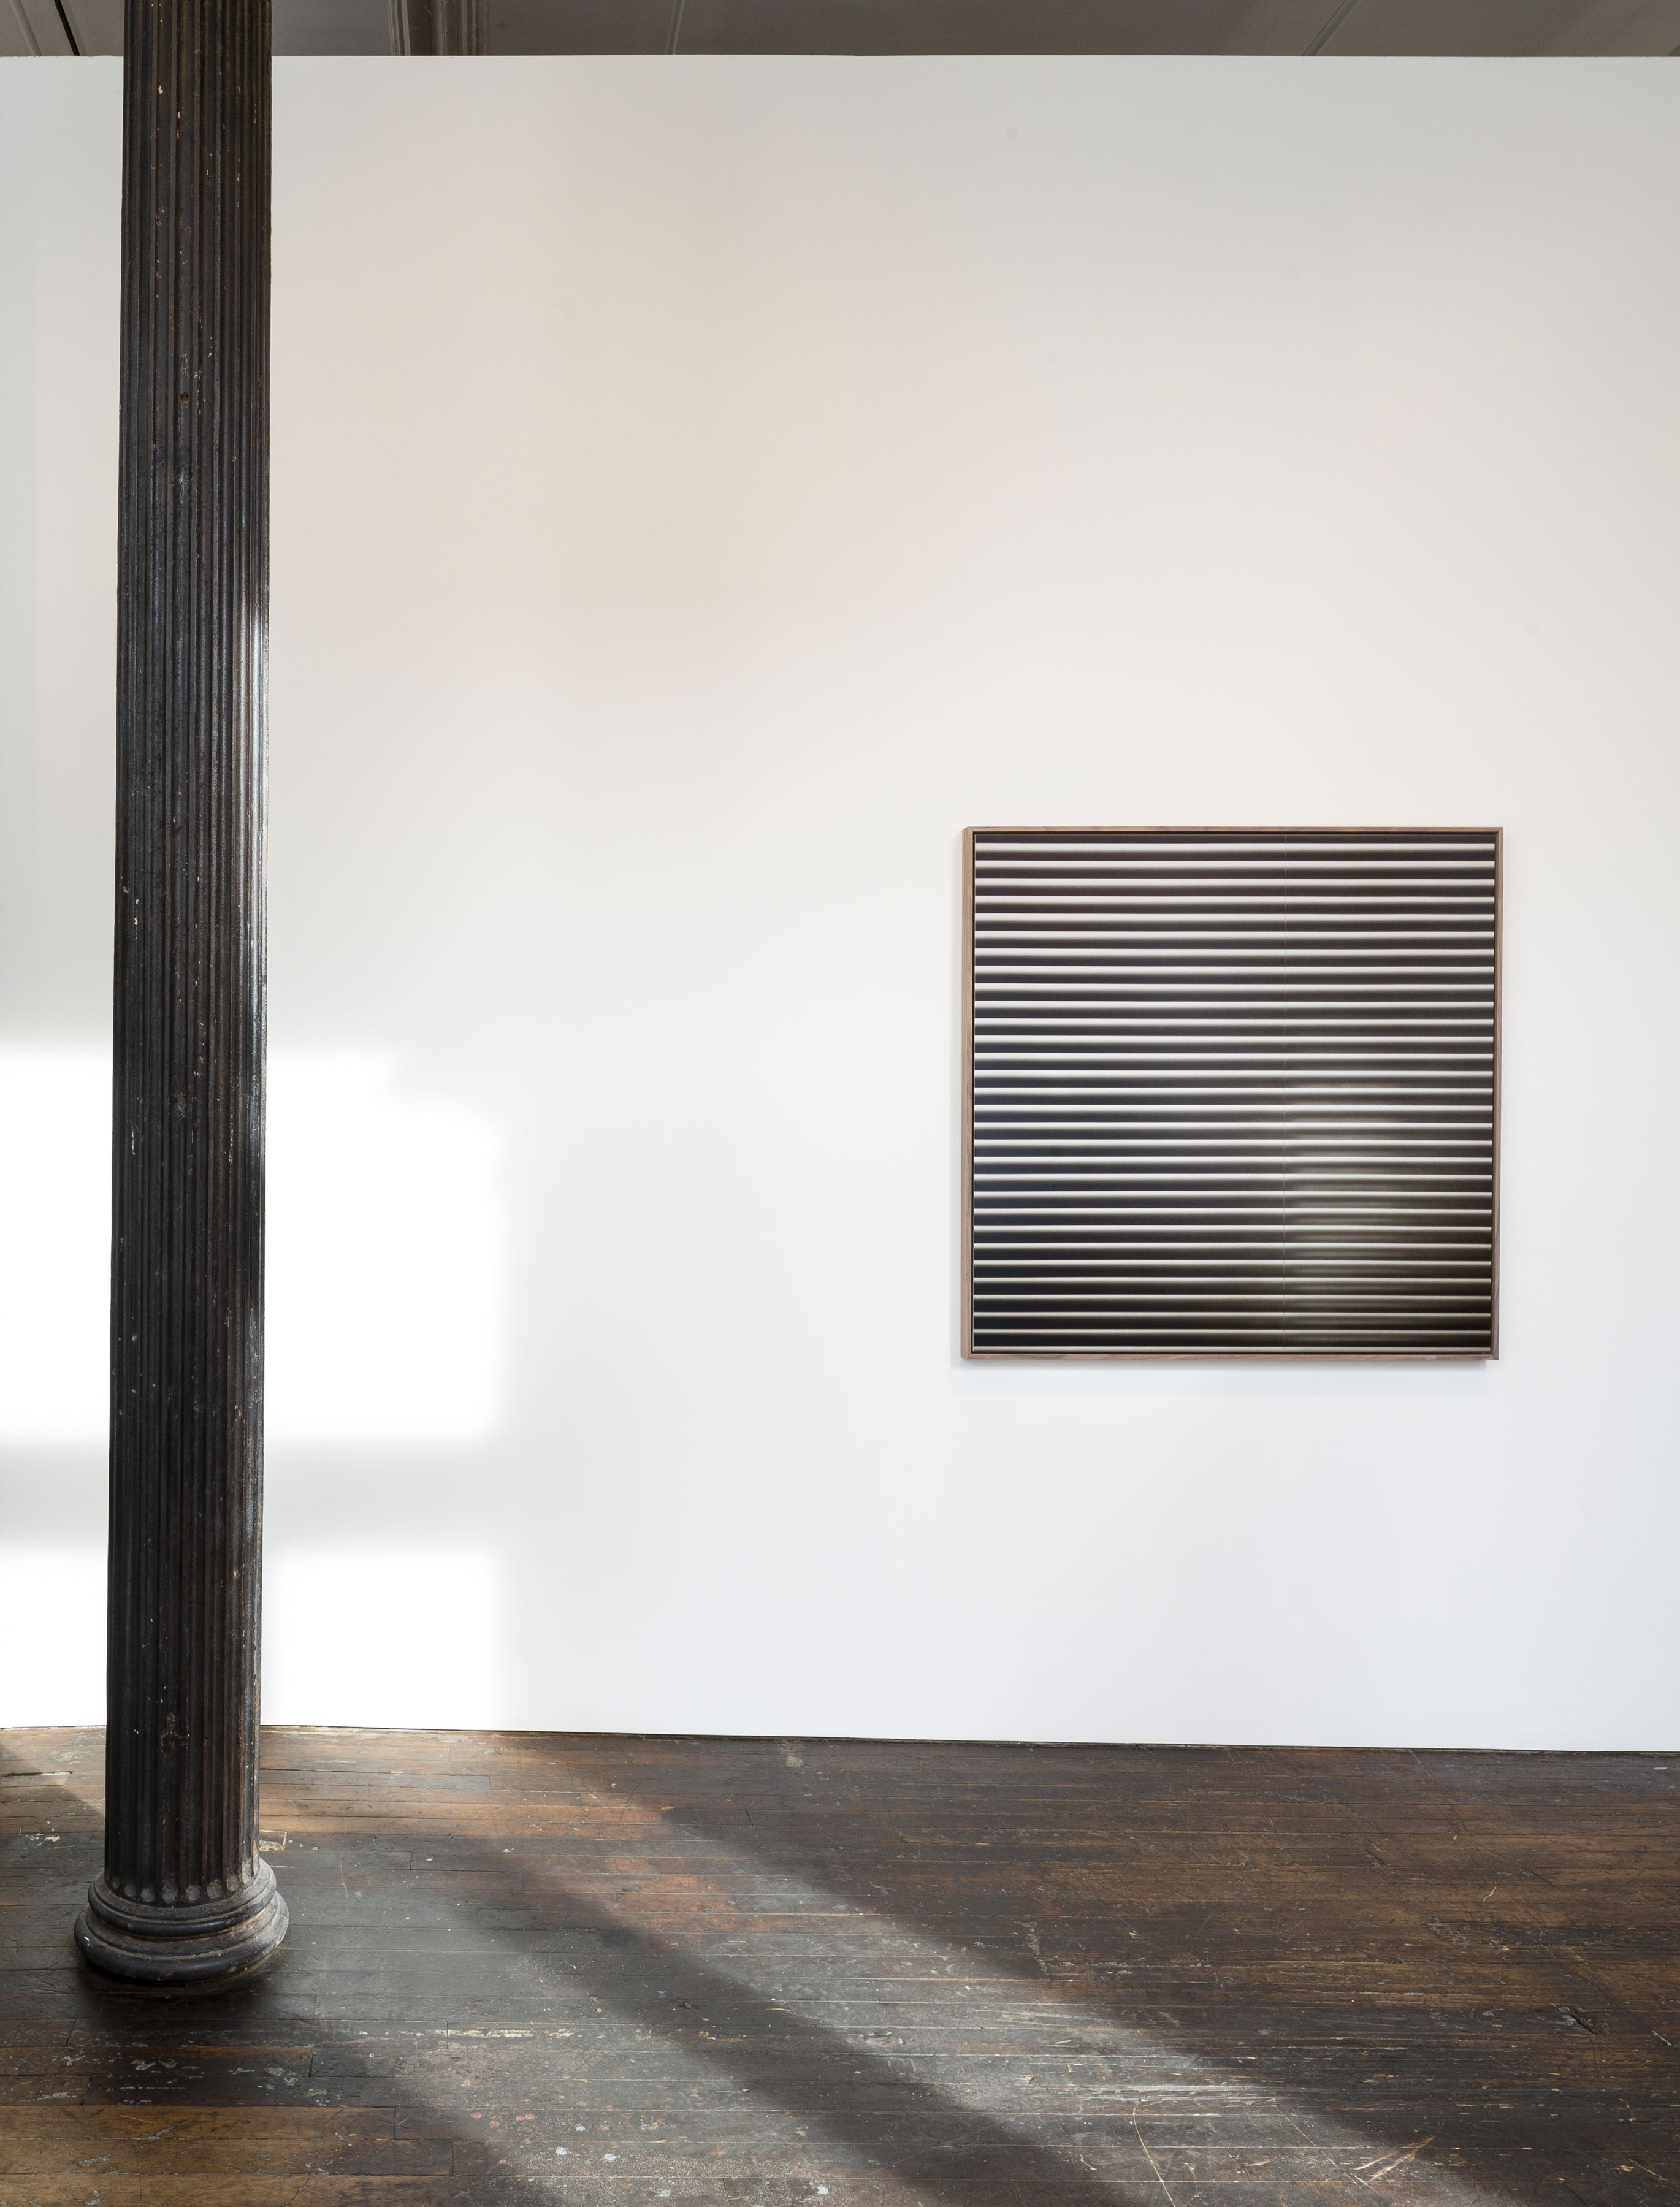 Jan Dibbets: Representations of Reality– installation view 3